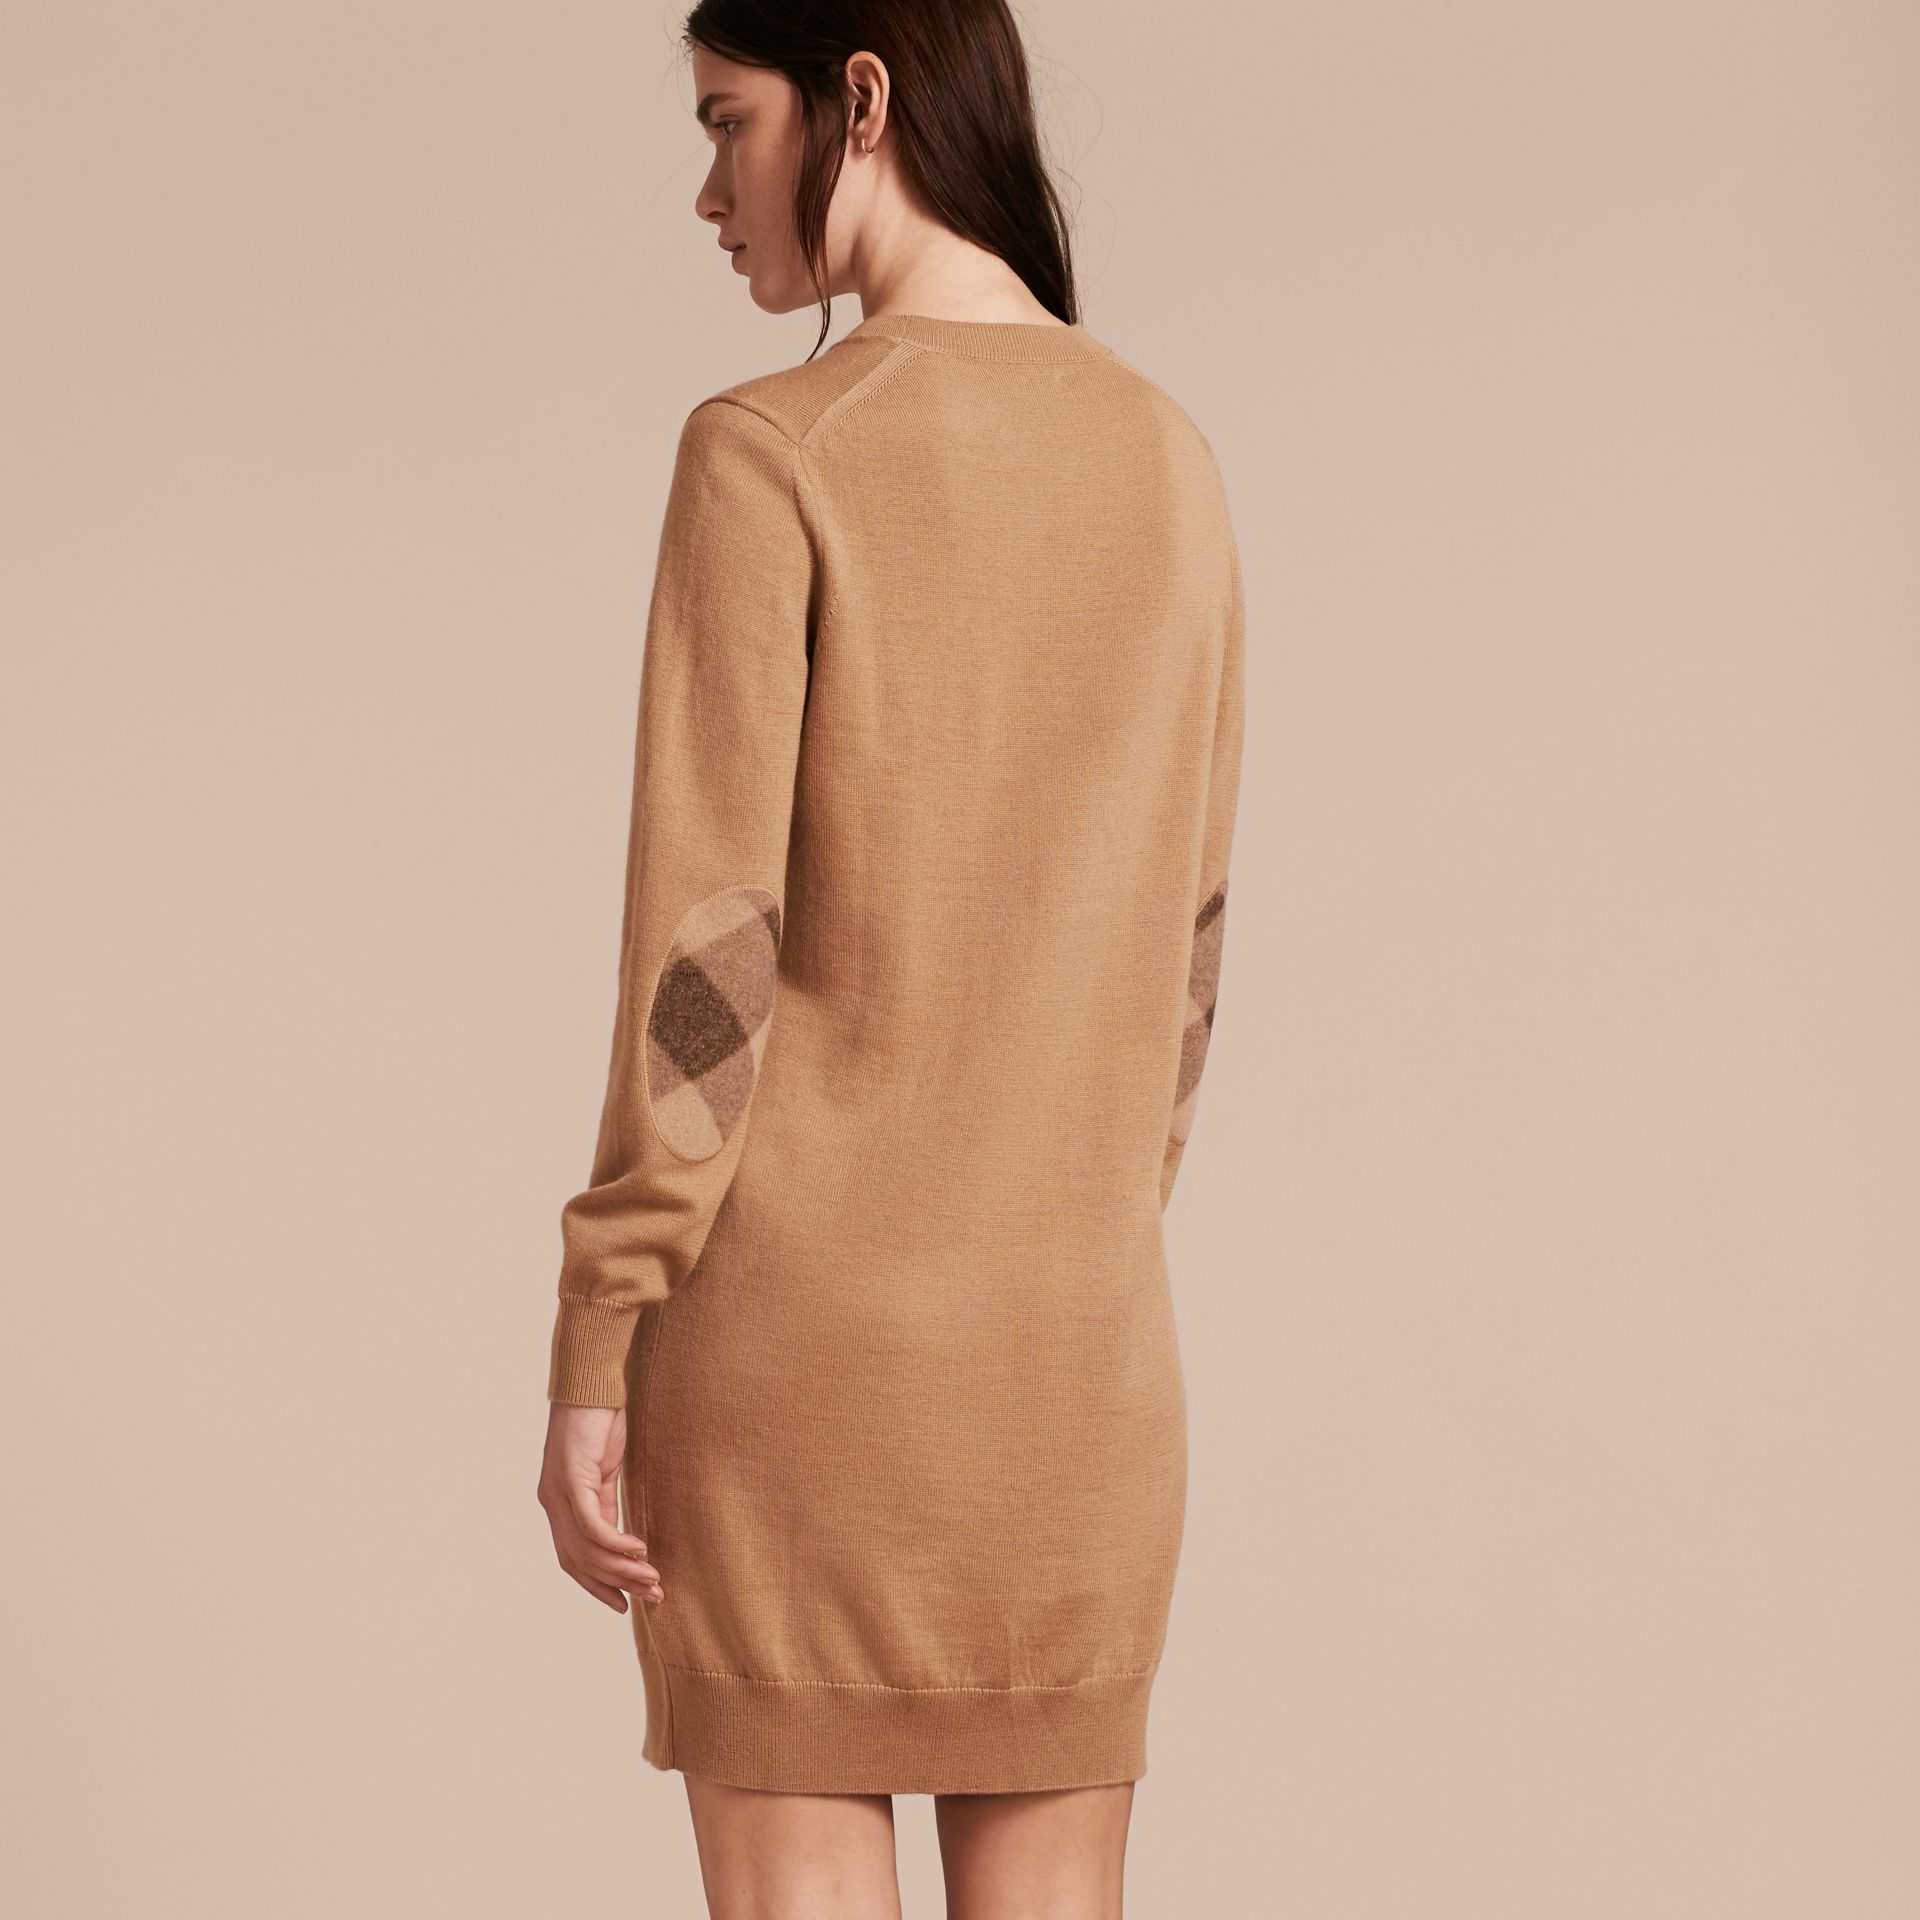 Camel Check Elbow Detail Merino Wool Sweater Dress Camel - gallery image 3